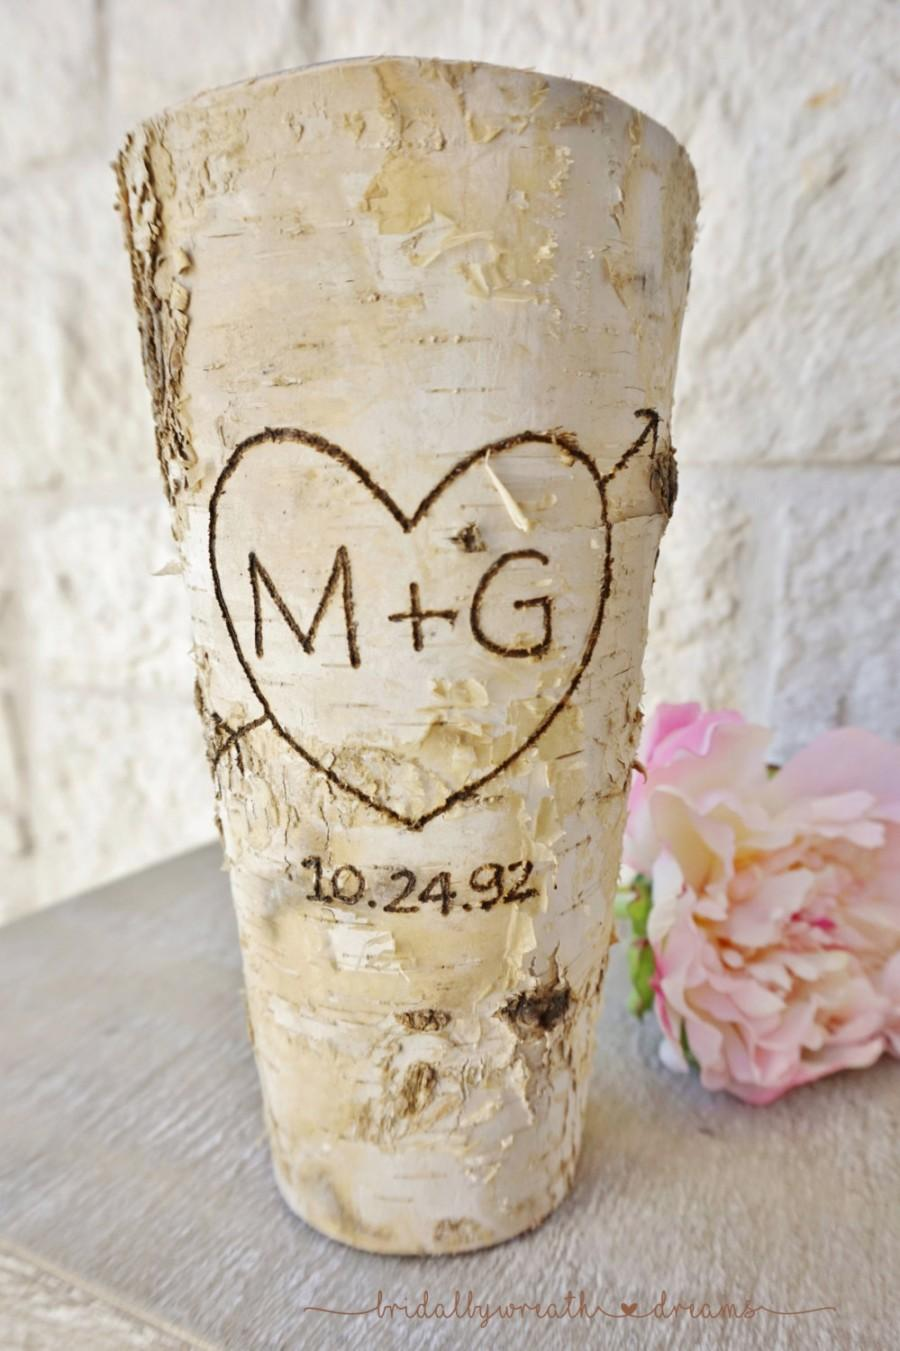 Hochzeit - initials & date birch bark vase centerpiece, wedding centerpiece, rustic chic wedding, shabby chic wedding, country wedding, garden wedding